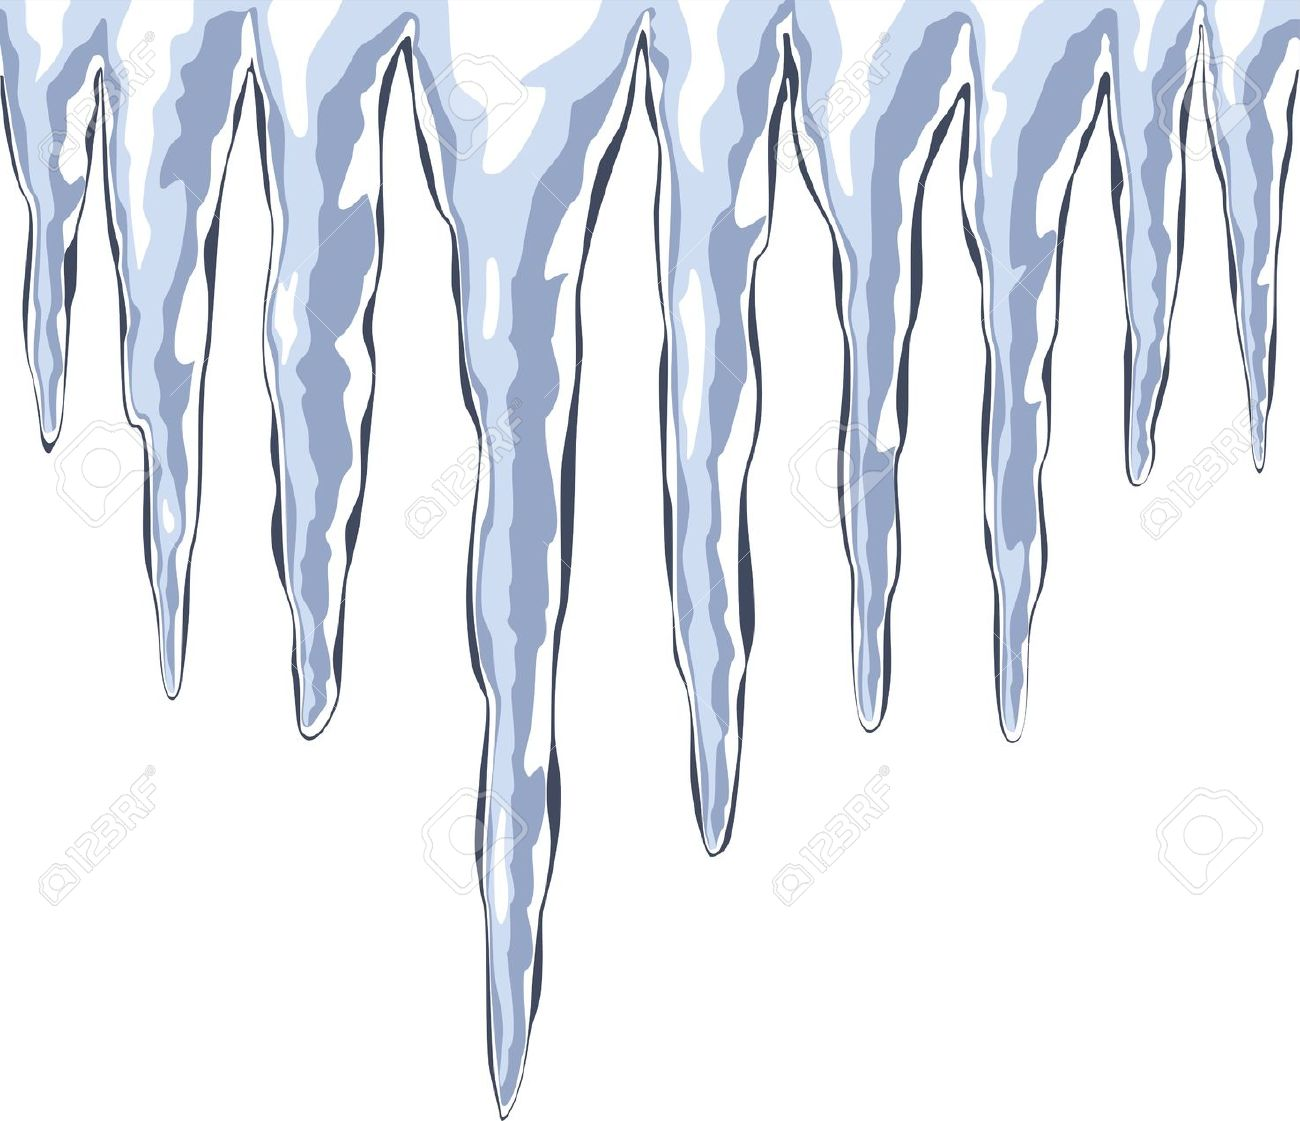 Crystals clipart stalactite Dripping Image Dripping Collection clipart